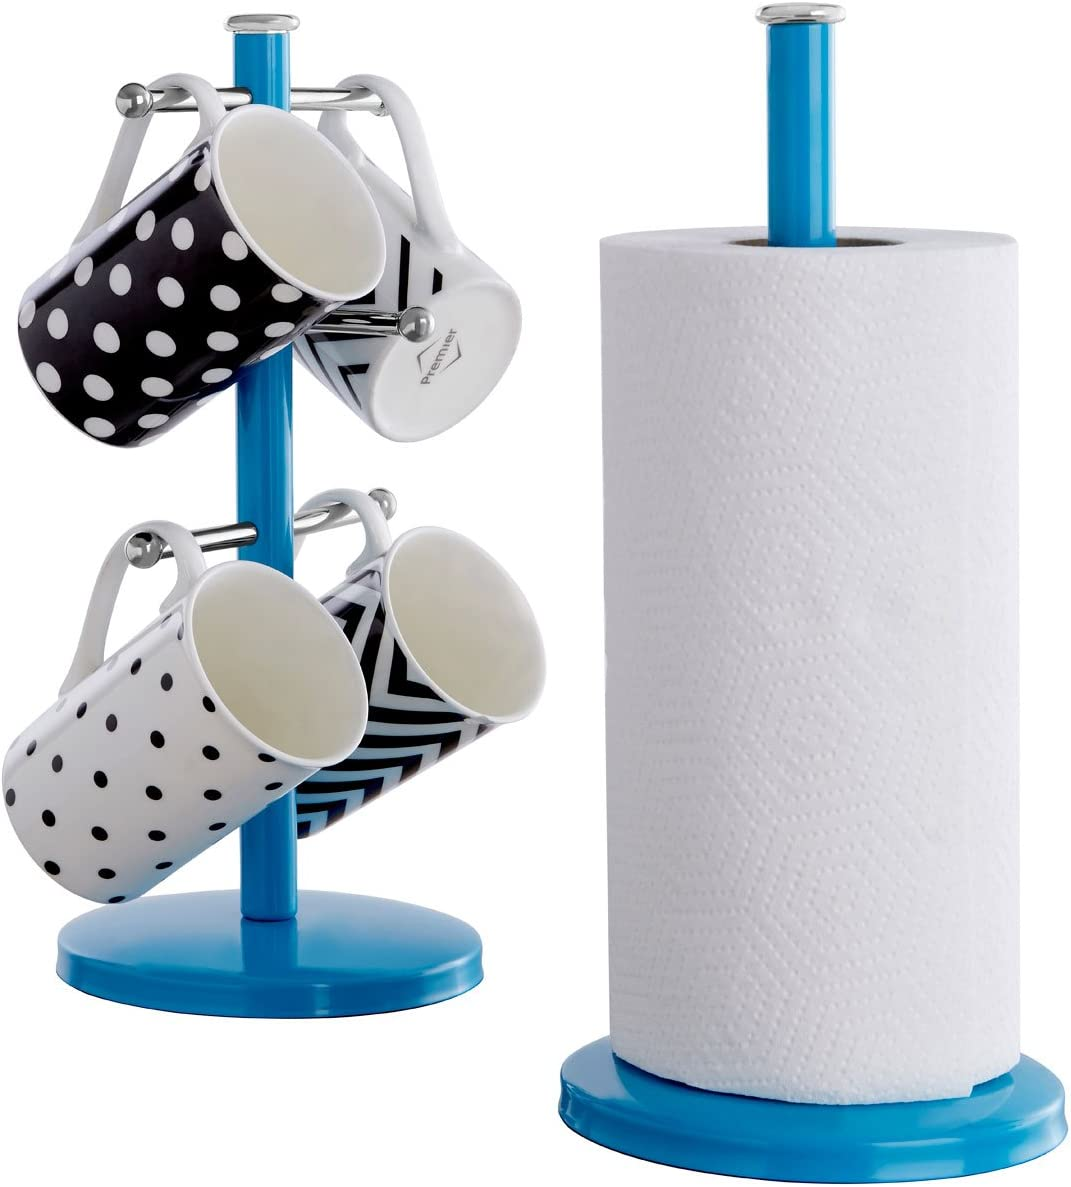 Premier Housewares Blue Kitchen Roll Holder